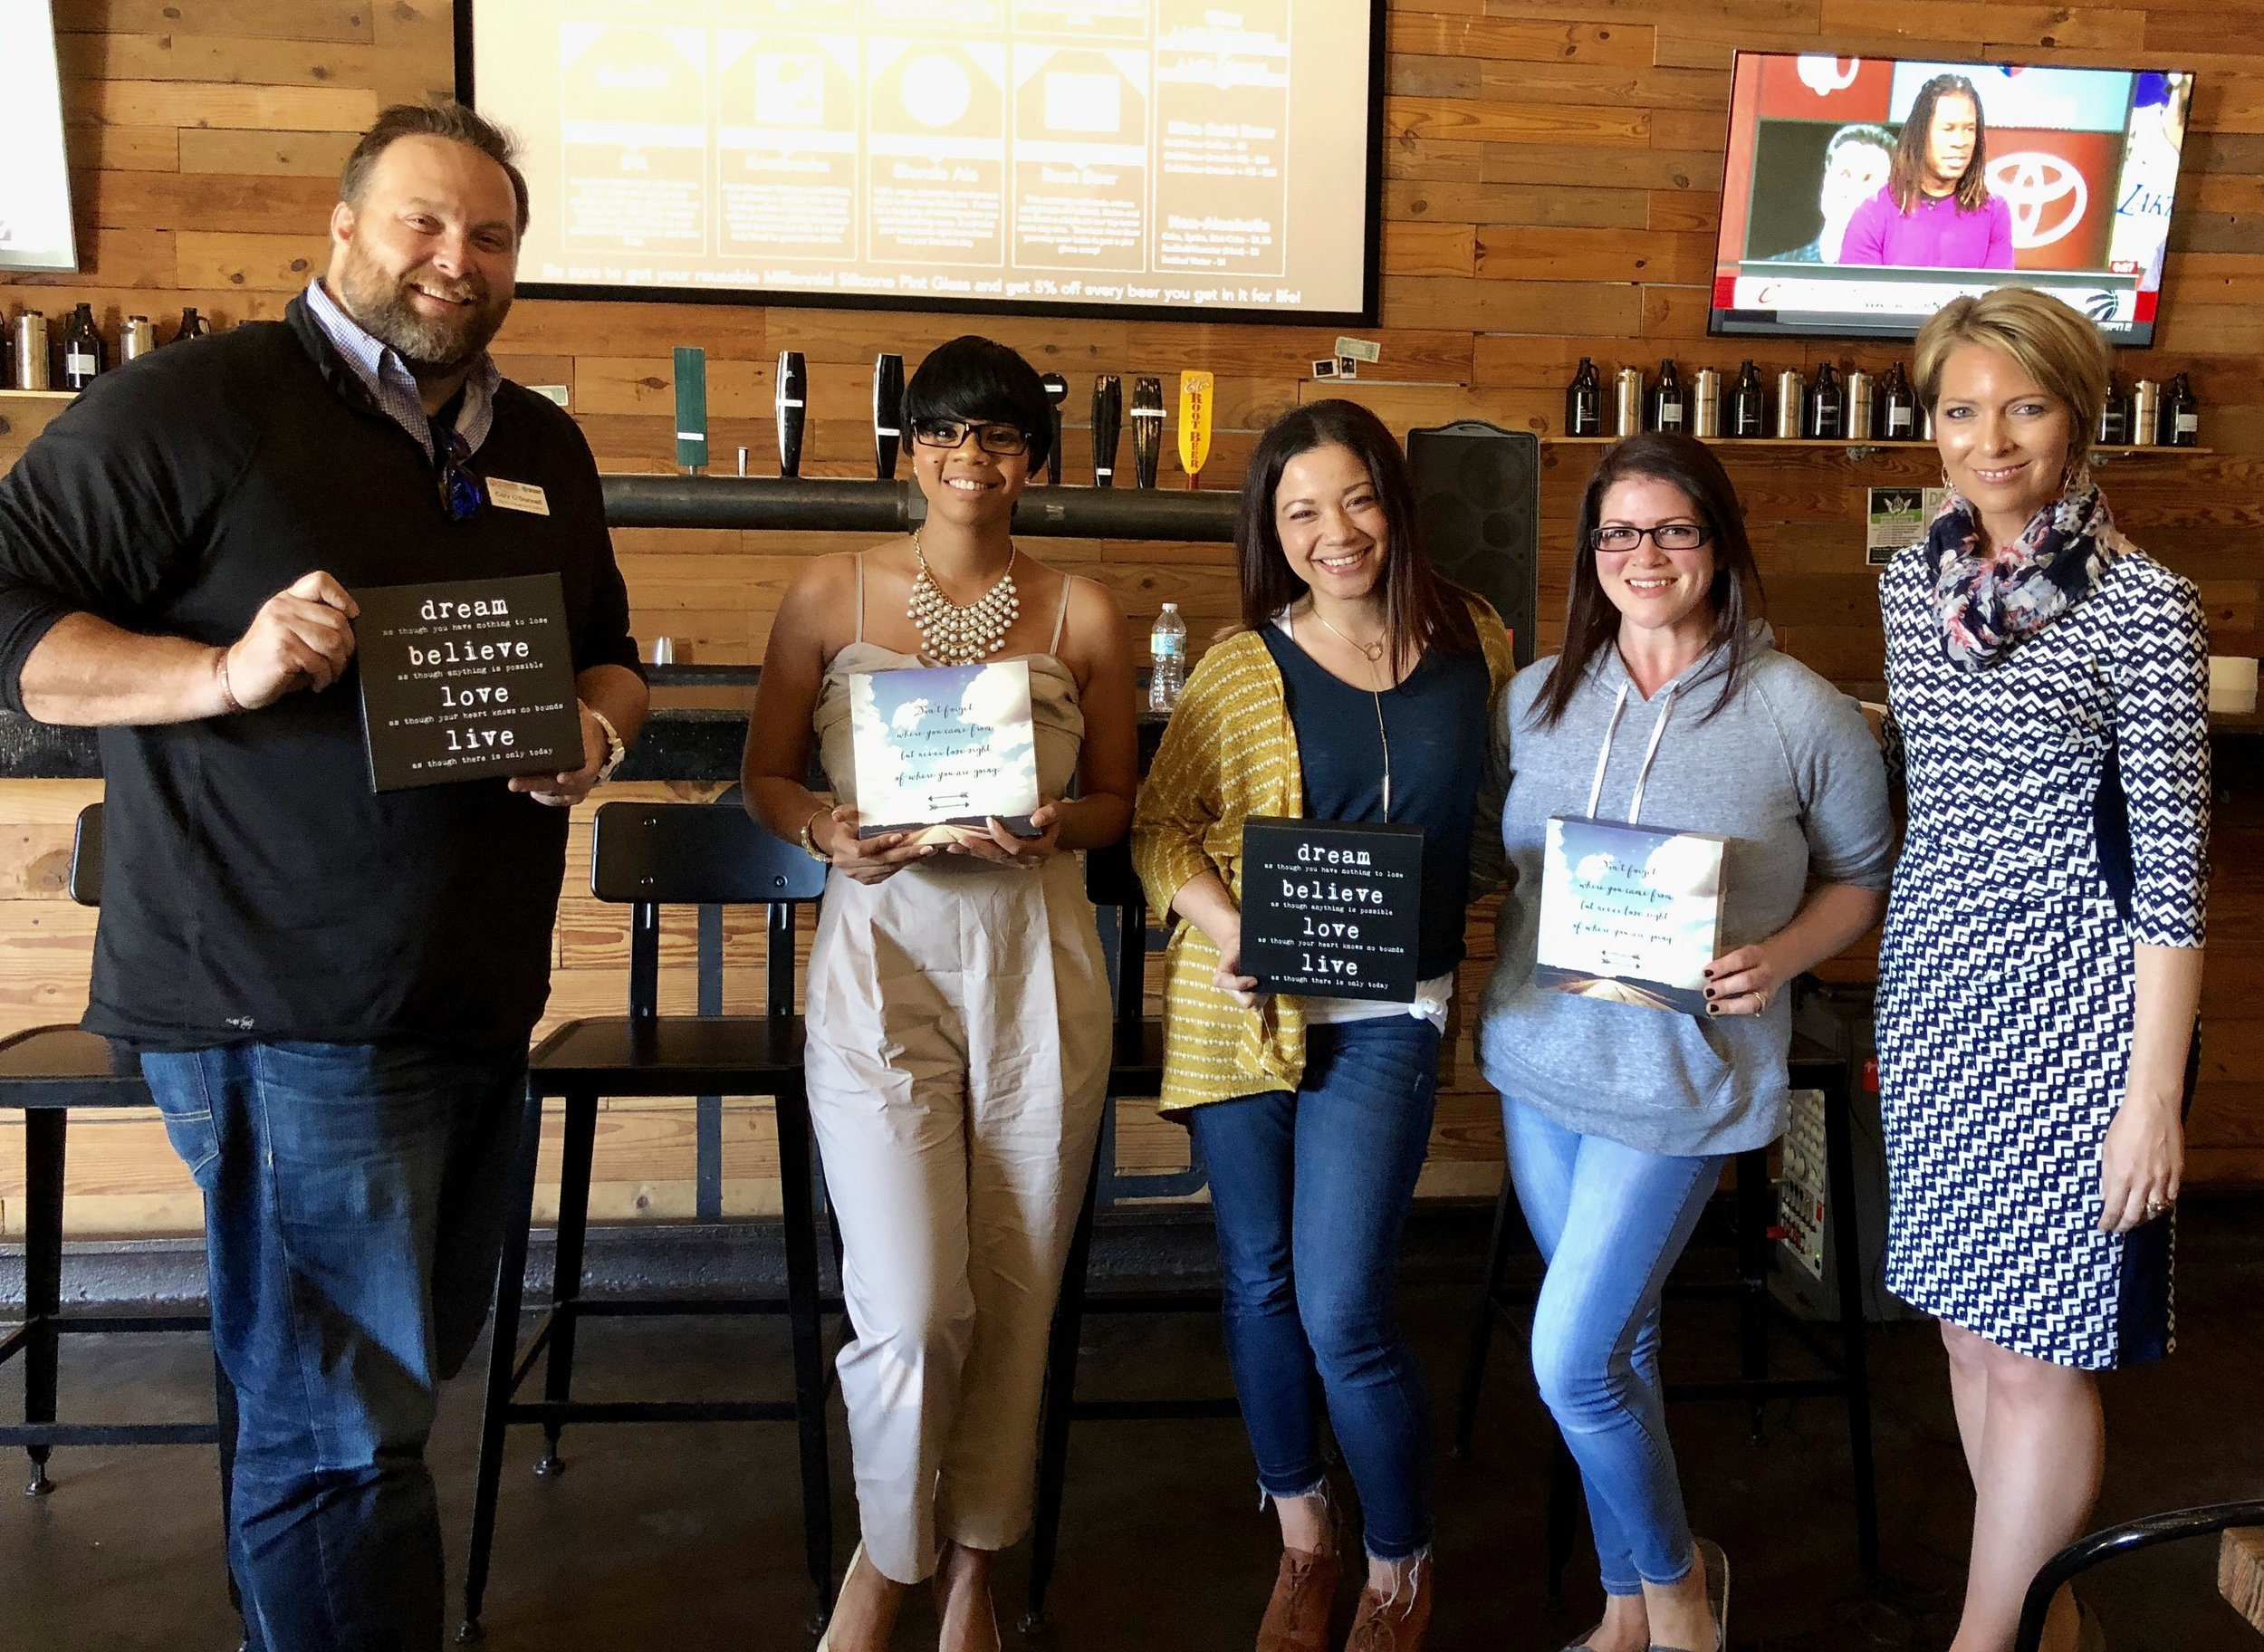 Cory O'Donnell, Charlene Towne, Amber Cebull, Jessica Smith and Erica Castner at the Expand Your Presence event at Millennial Brewing in Fort Myers, FL on March 22, 2018.